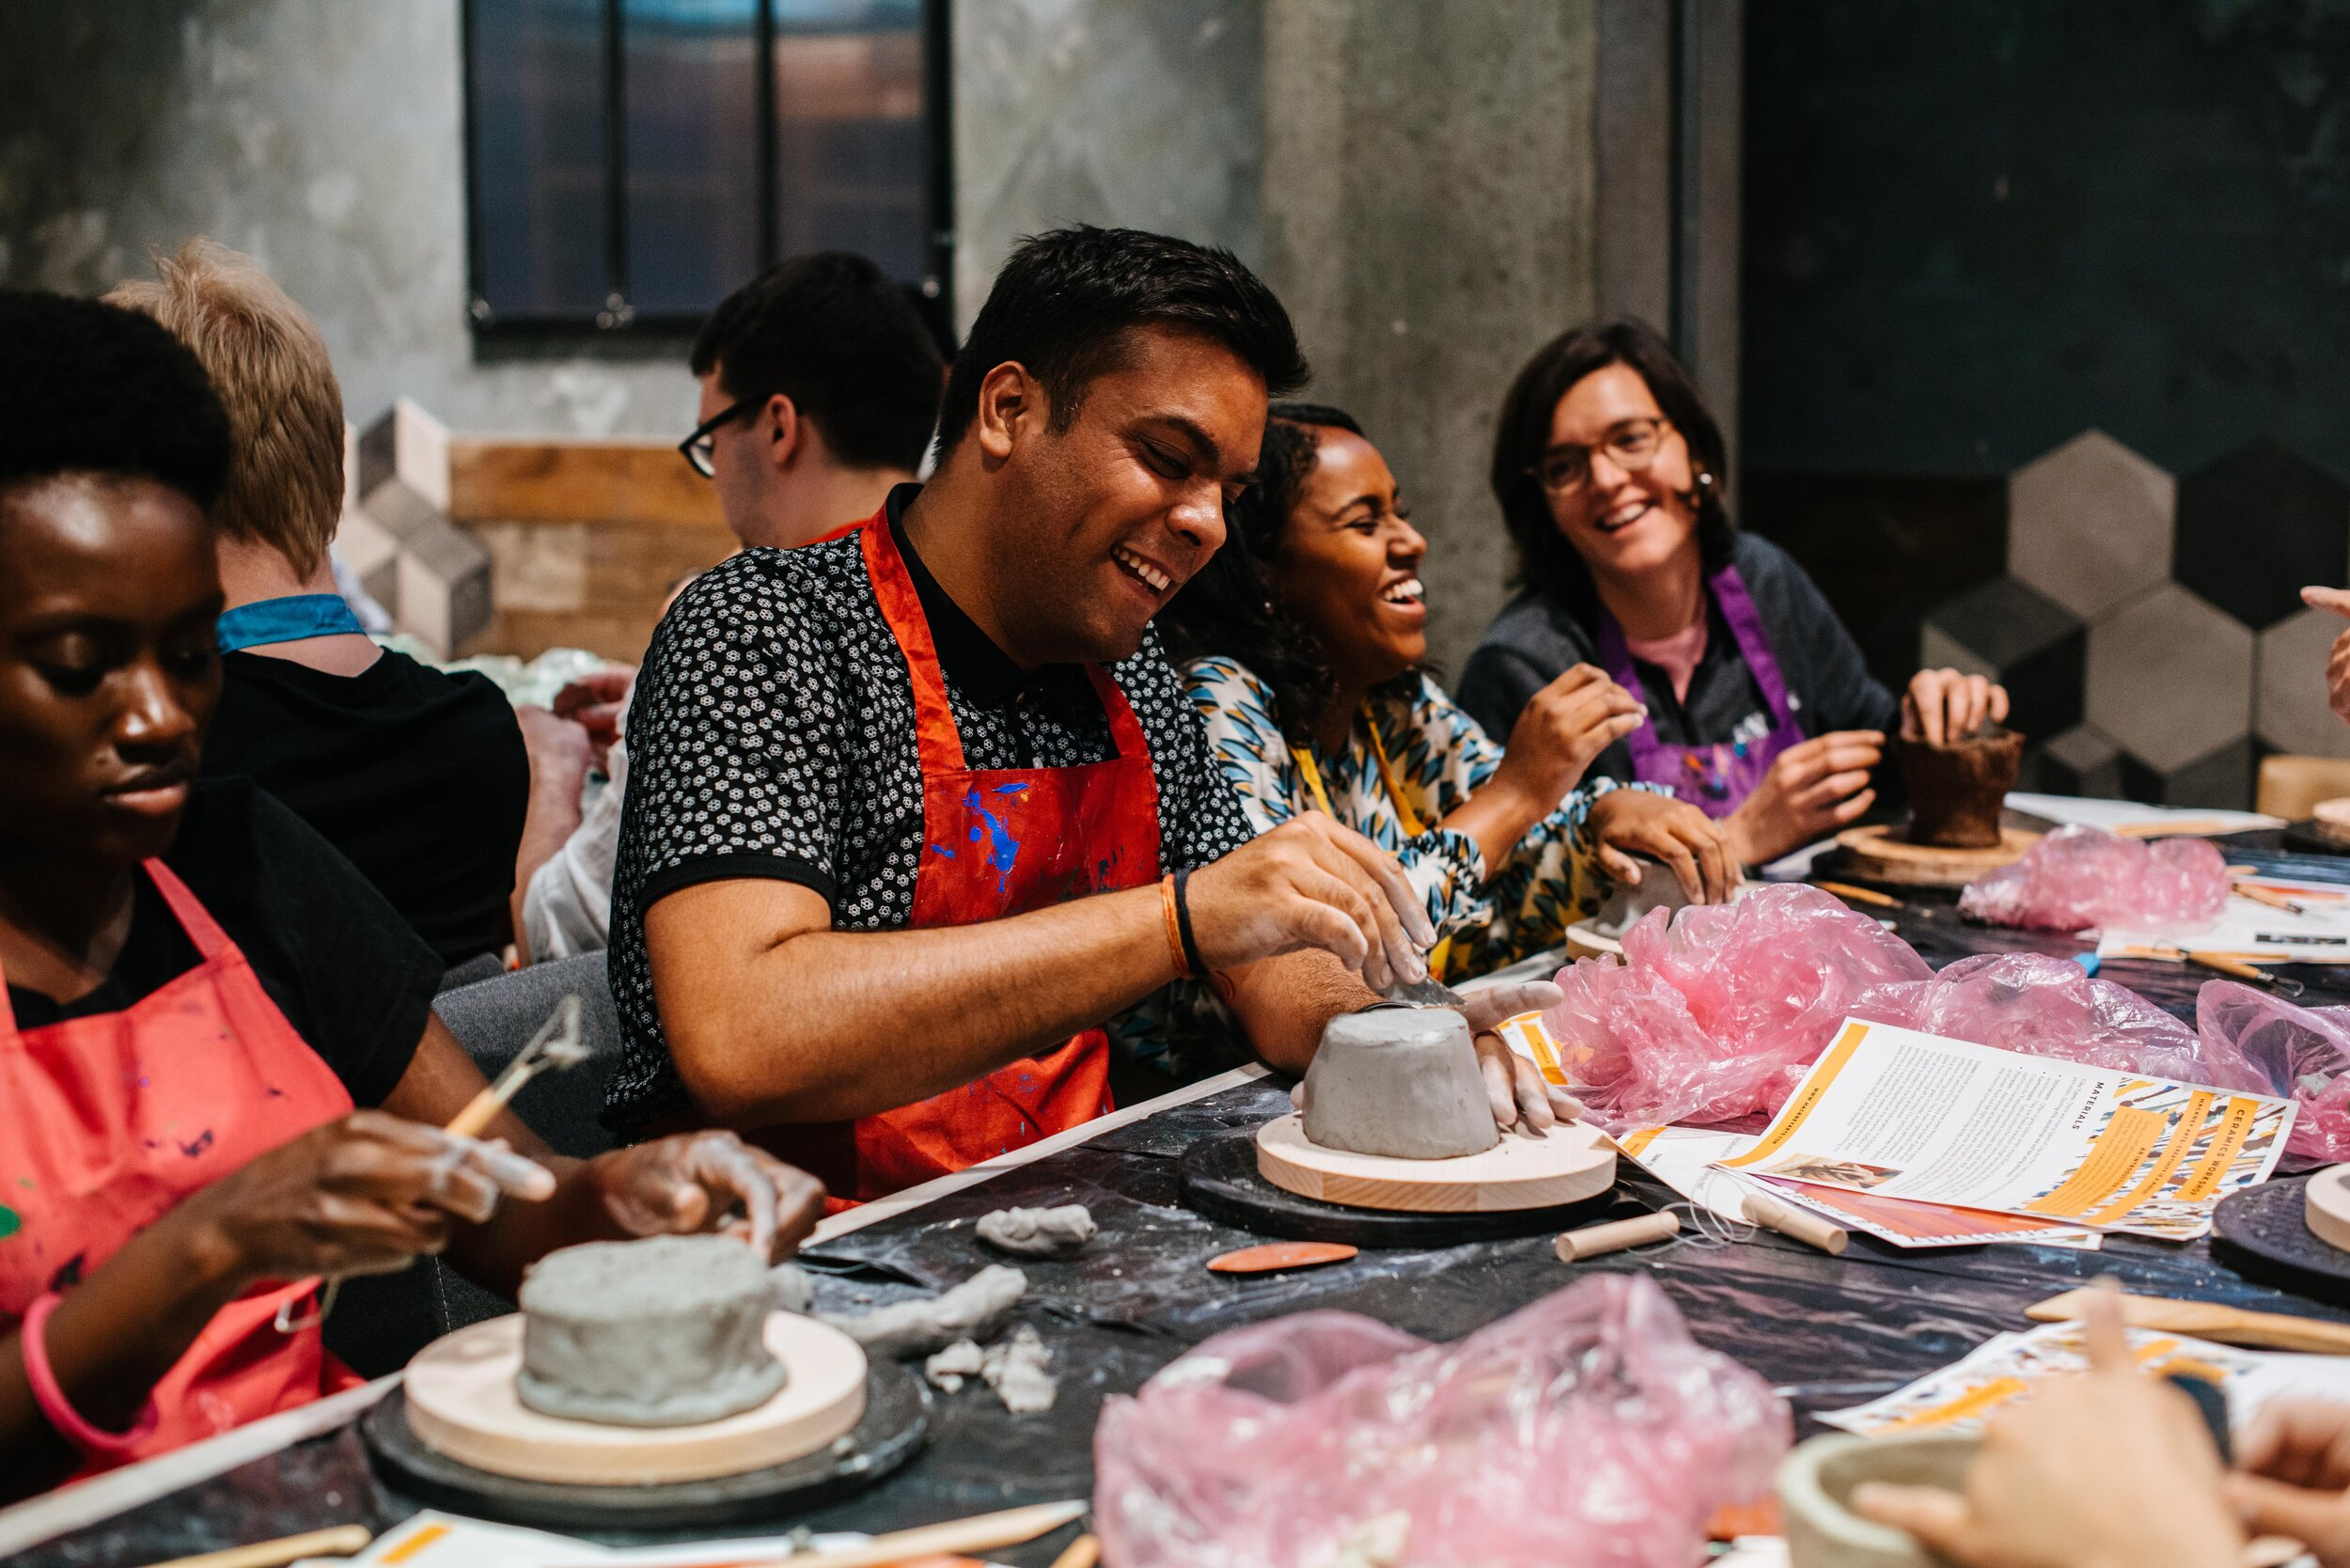 Want to know more about the benefits of learning creative skills? - Our Founder Sophie Thompson talks about the unique positive effects on wellbeing that creative workshops can offer.Read all about it here.